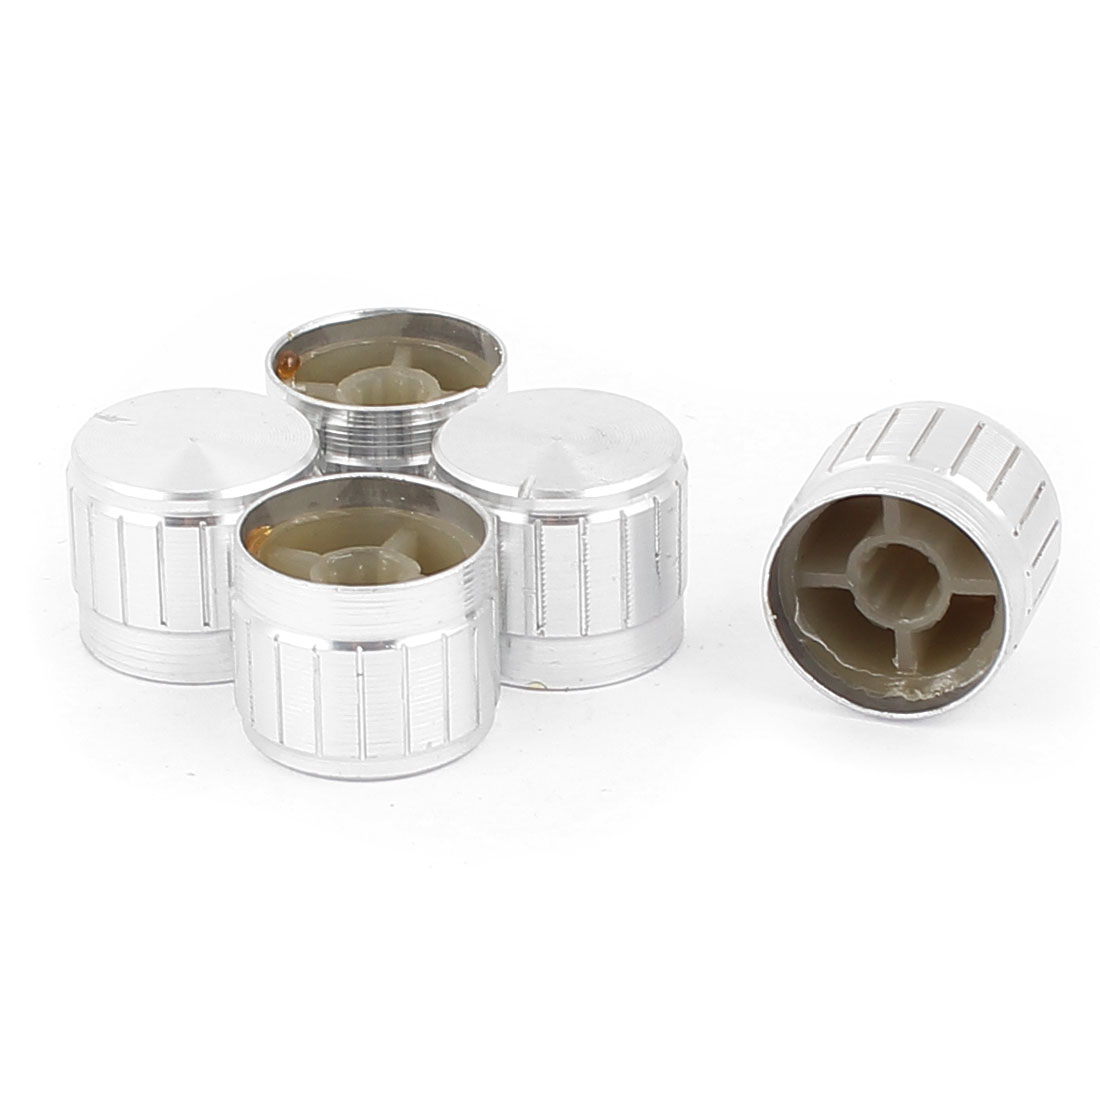 5 Pcs 21mm x 6mm Aluminium Alloy Potentiometer Control Knob Mini Cap Knurled Button Silver Tone